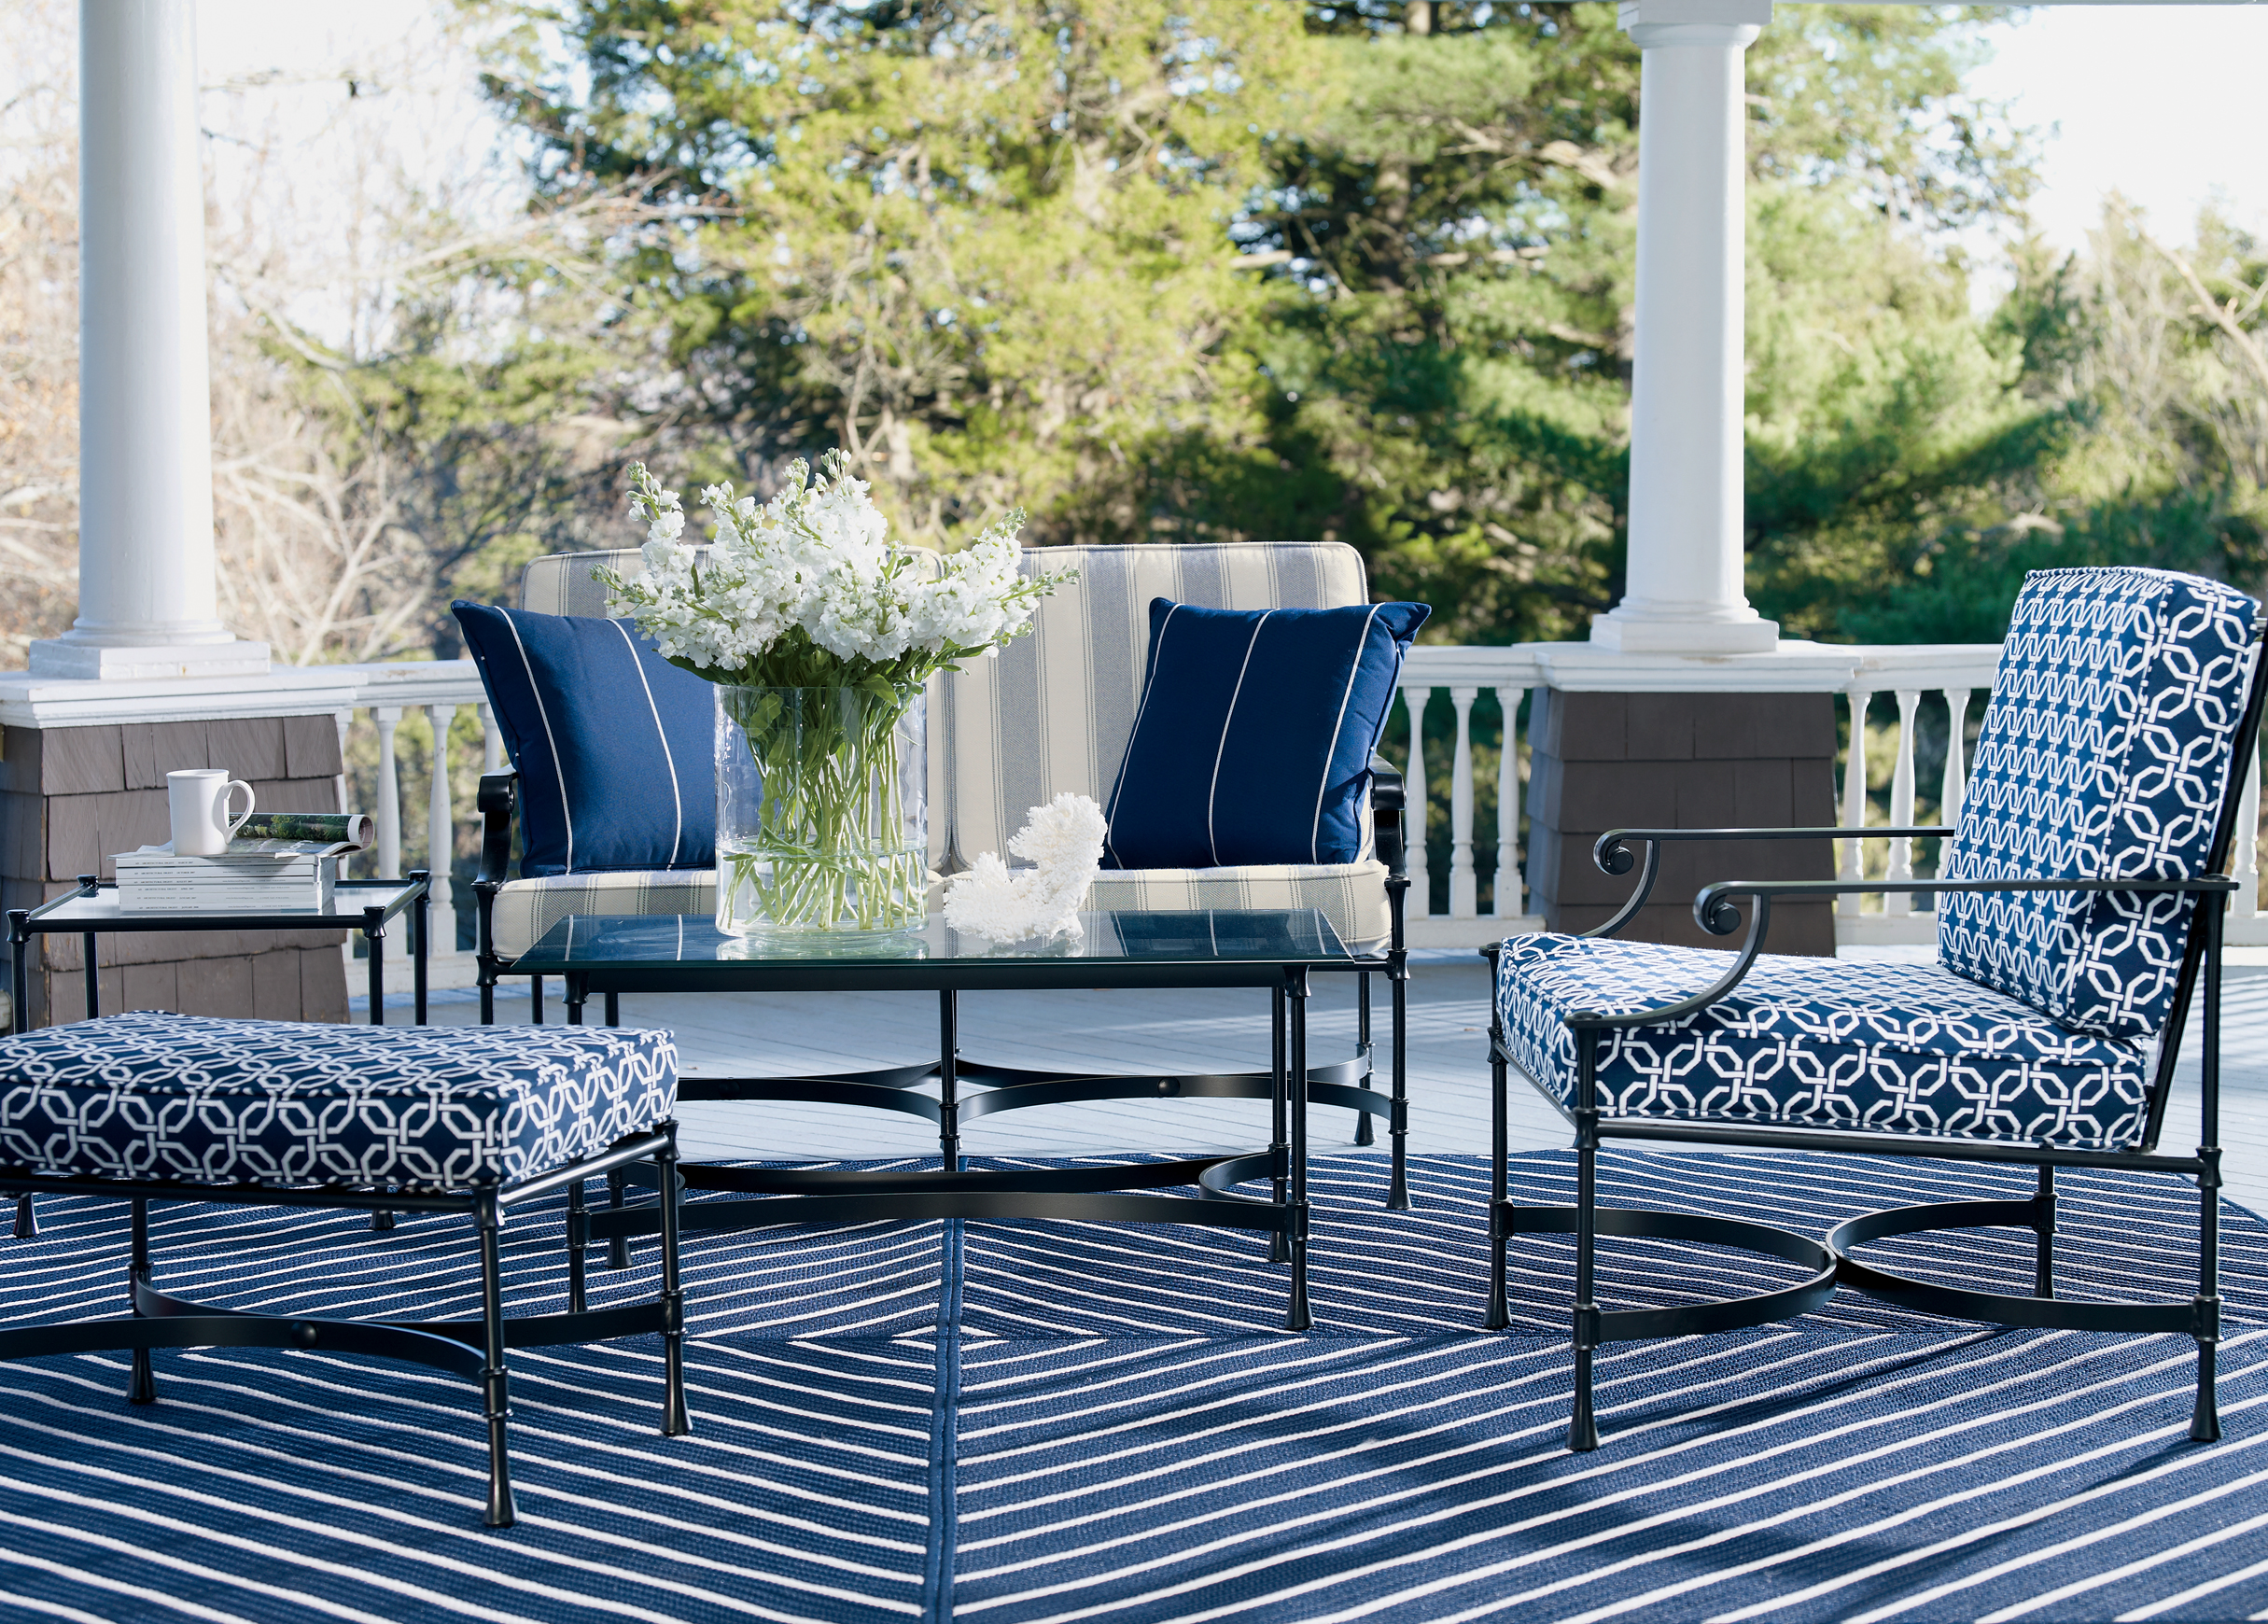 5 Fresh Furniture Ideas To Add Color To Your Outdoors